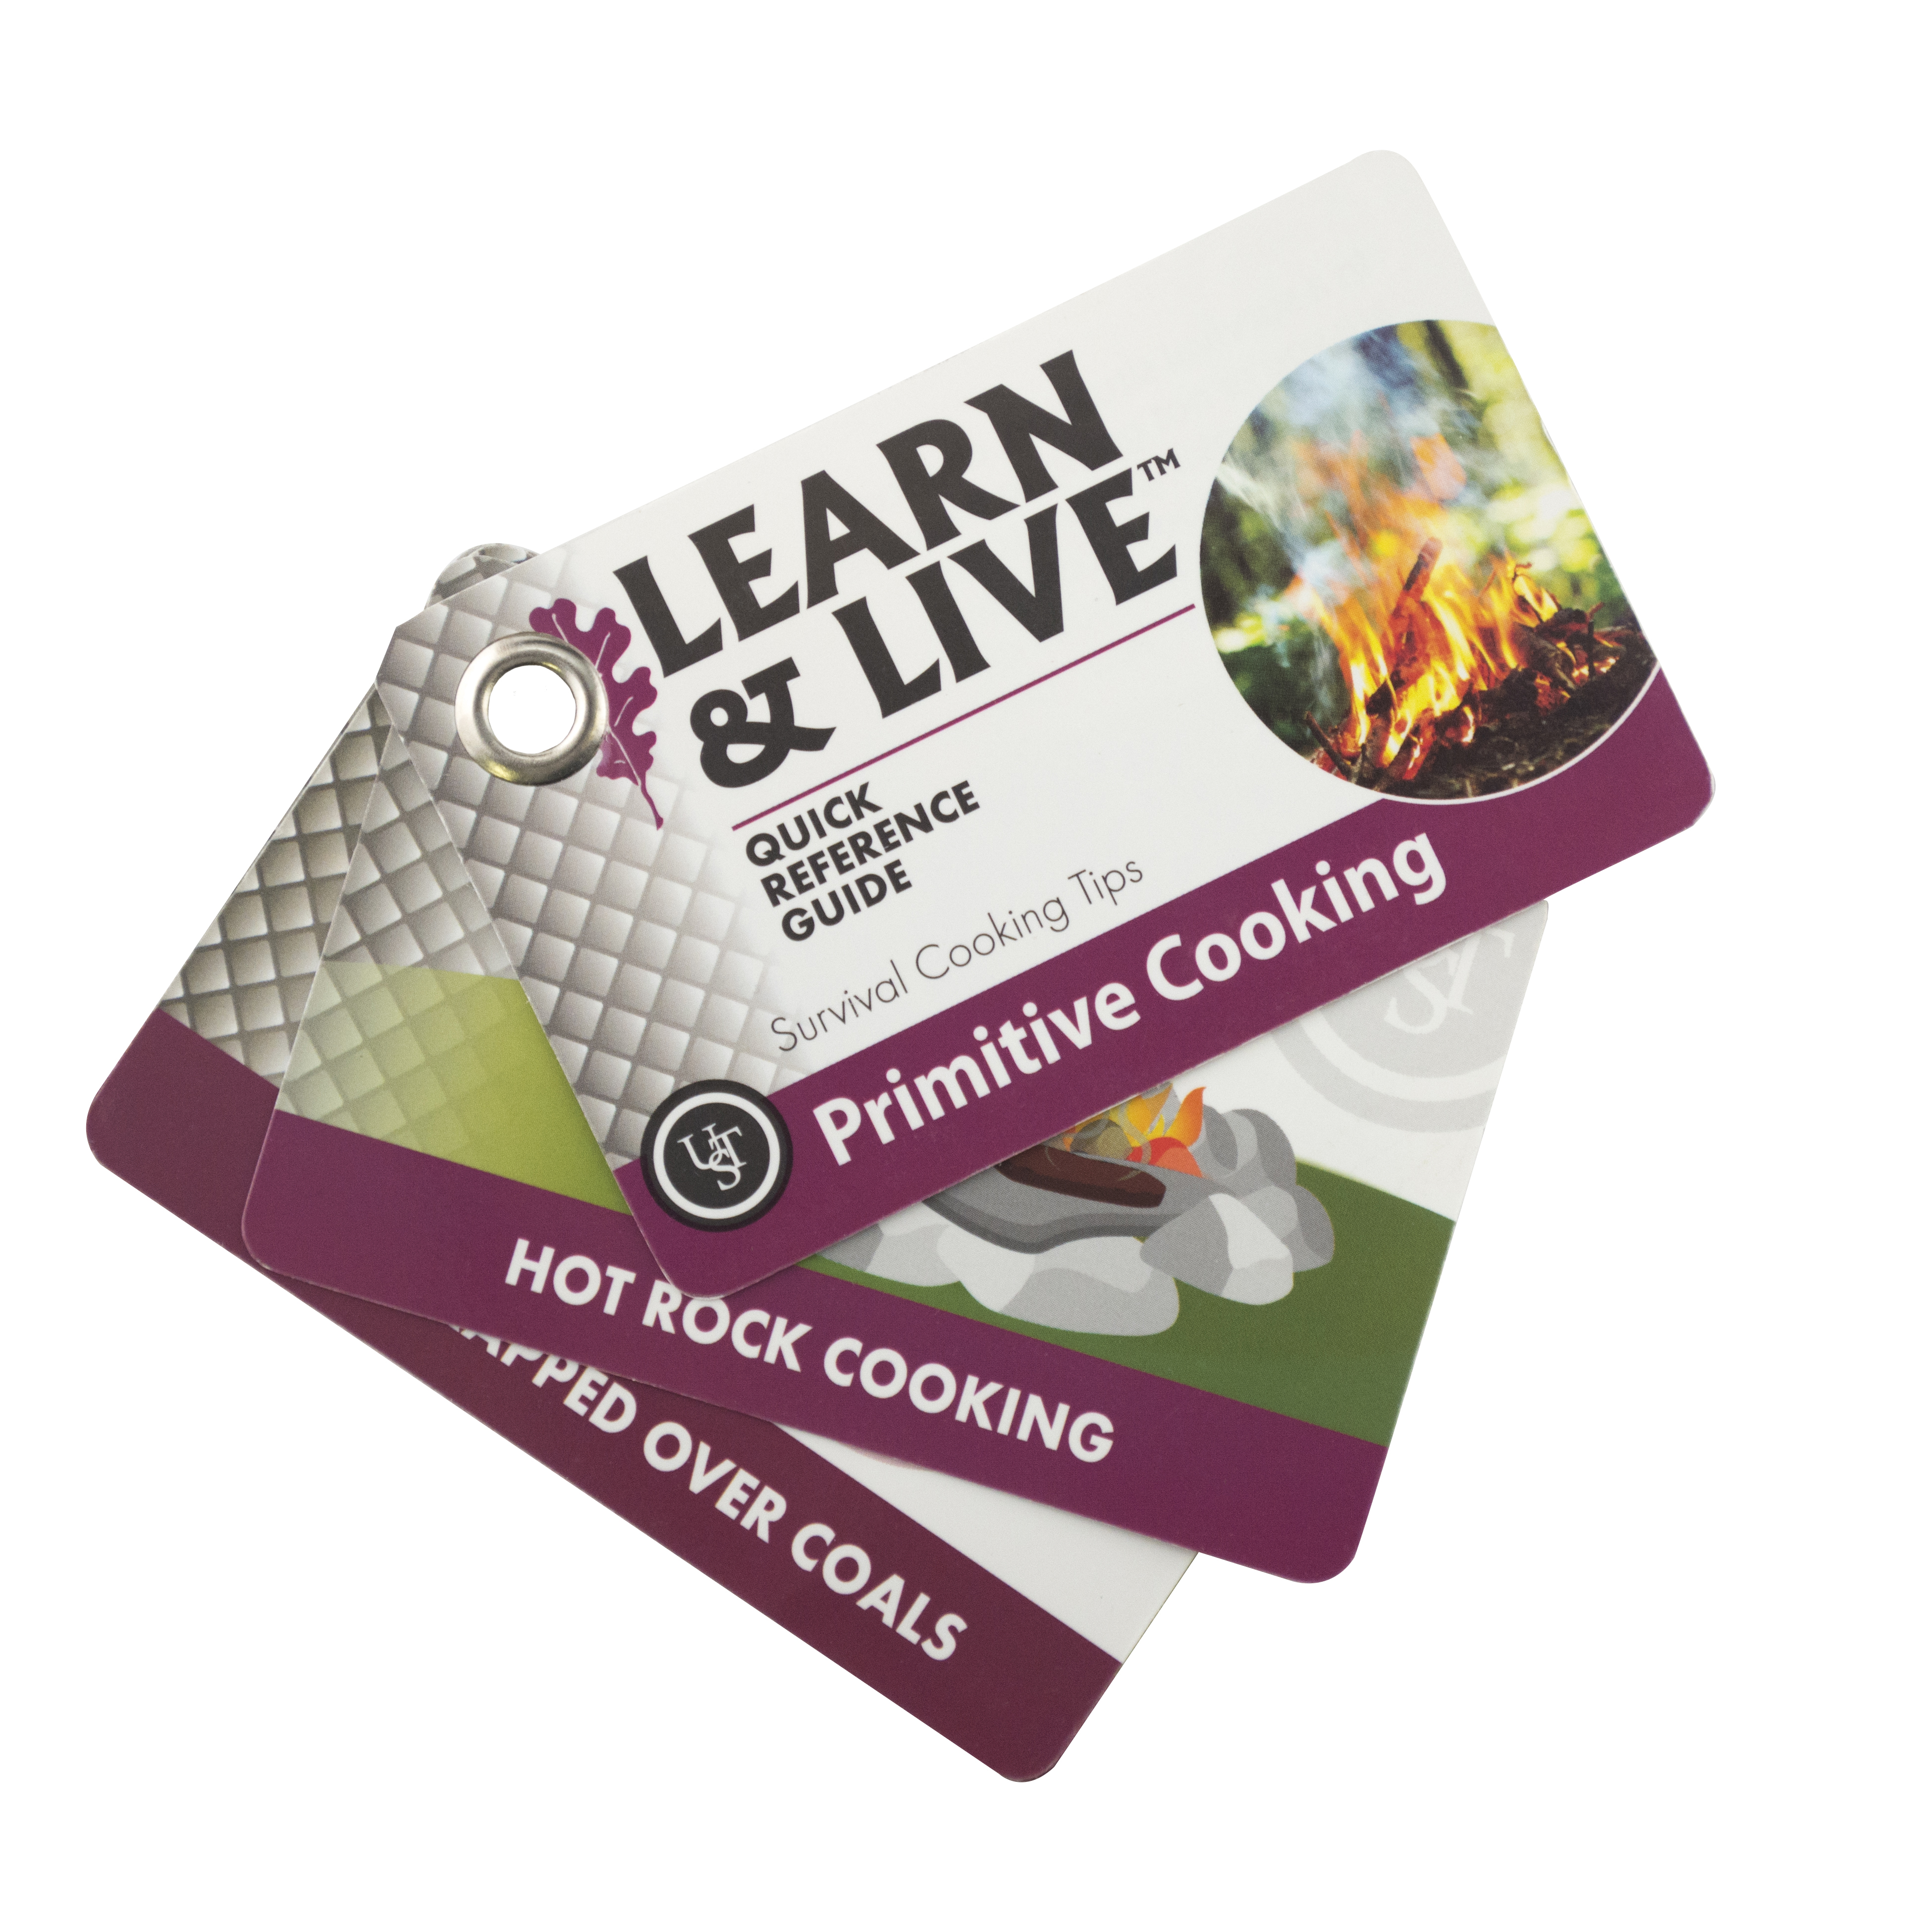 20-02744 - UST Brands Learn & Live Cards - Primitive Cooking Blister